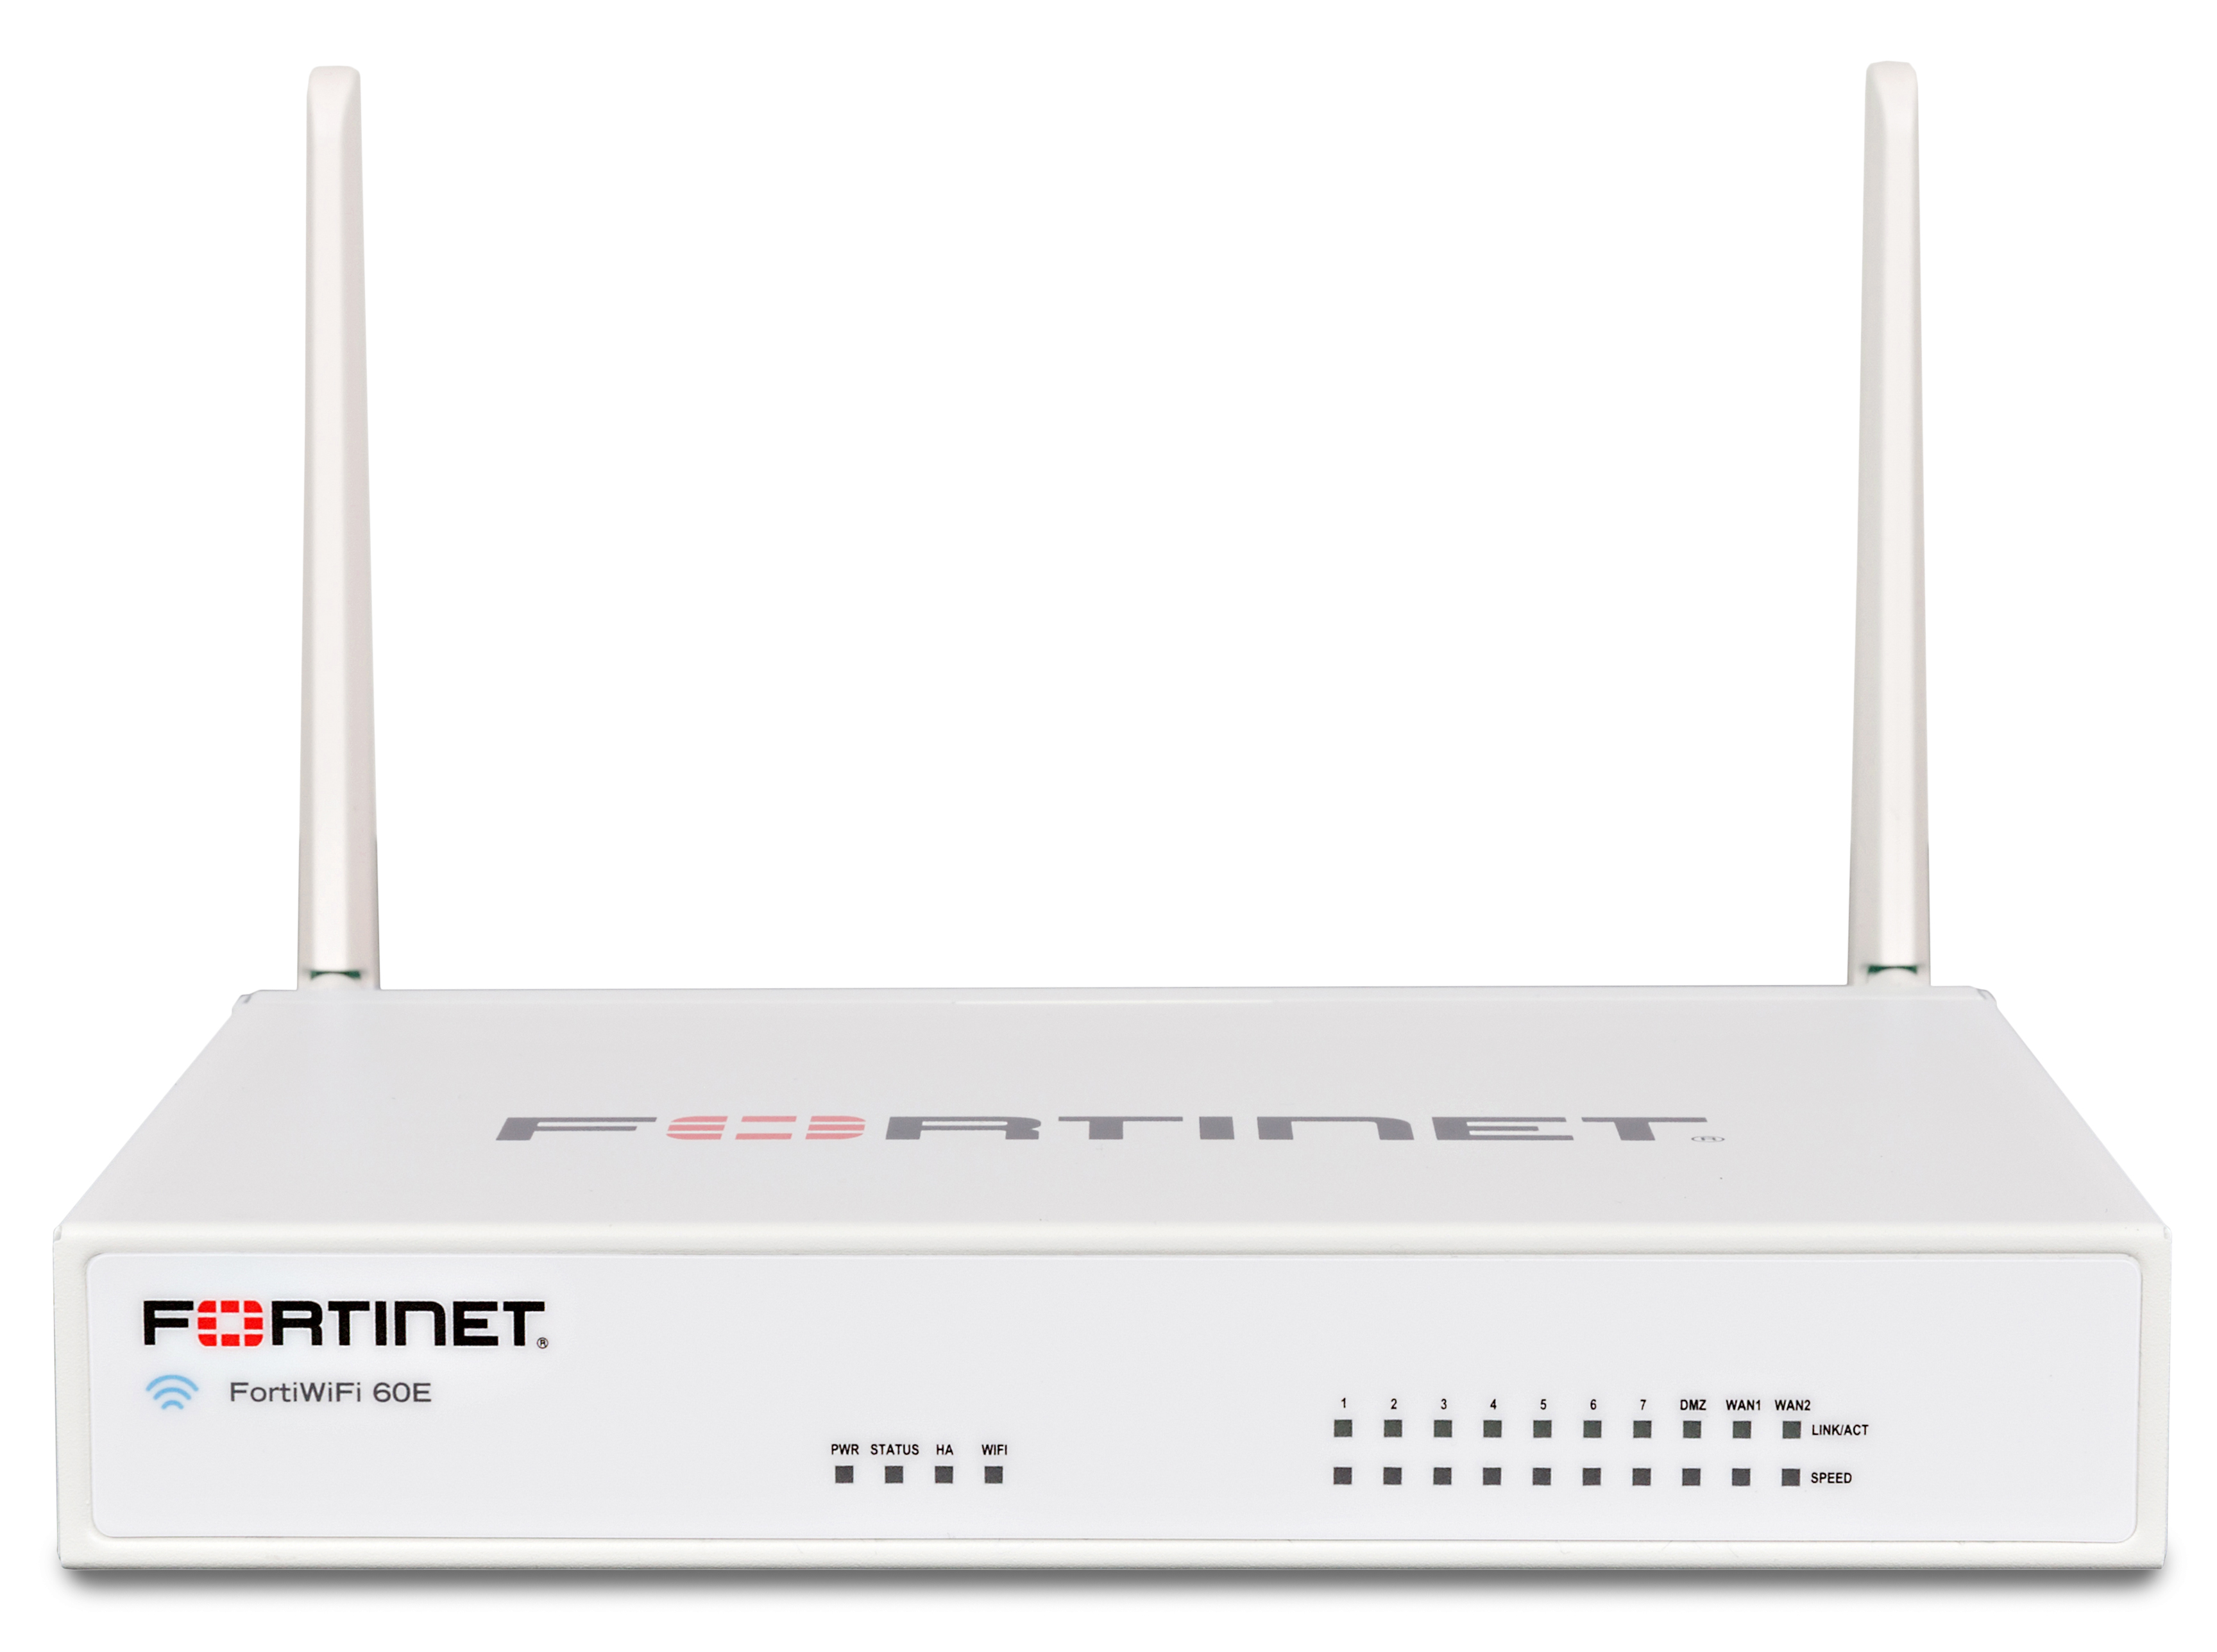 Fortinet FortiWifi 60F